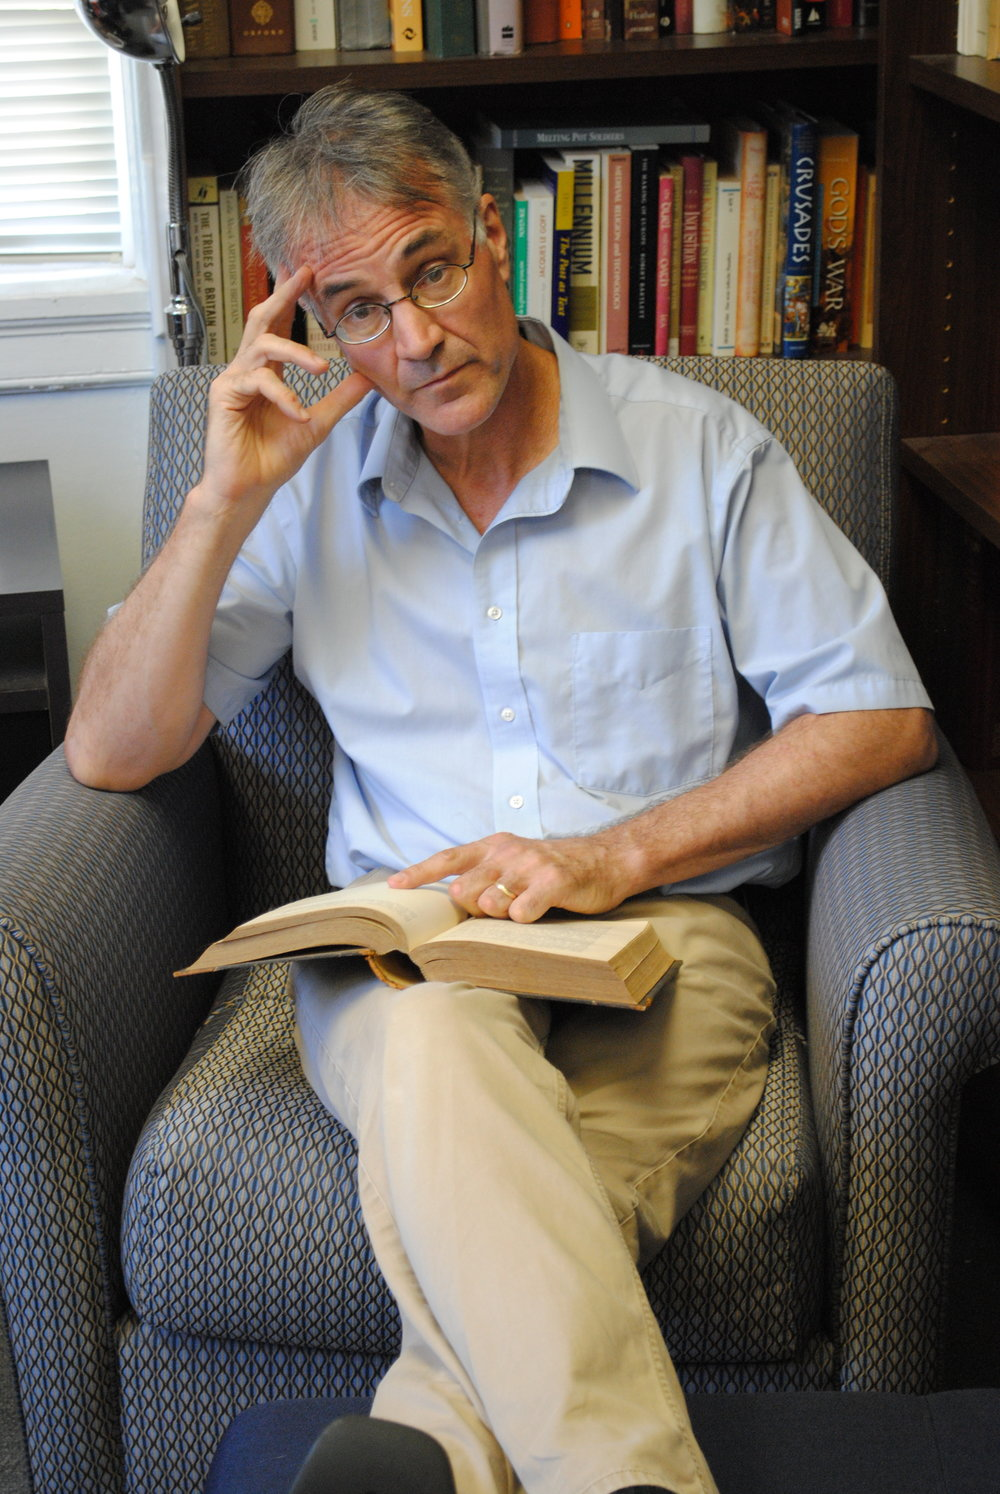 Sager reading in his office, 2017. Photo: Kris Petti